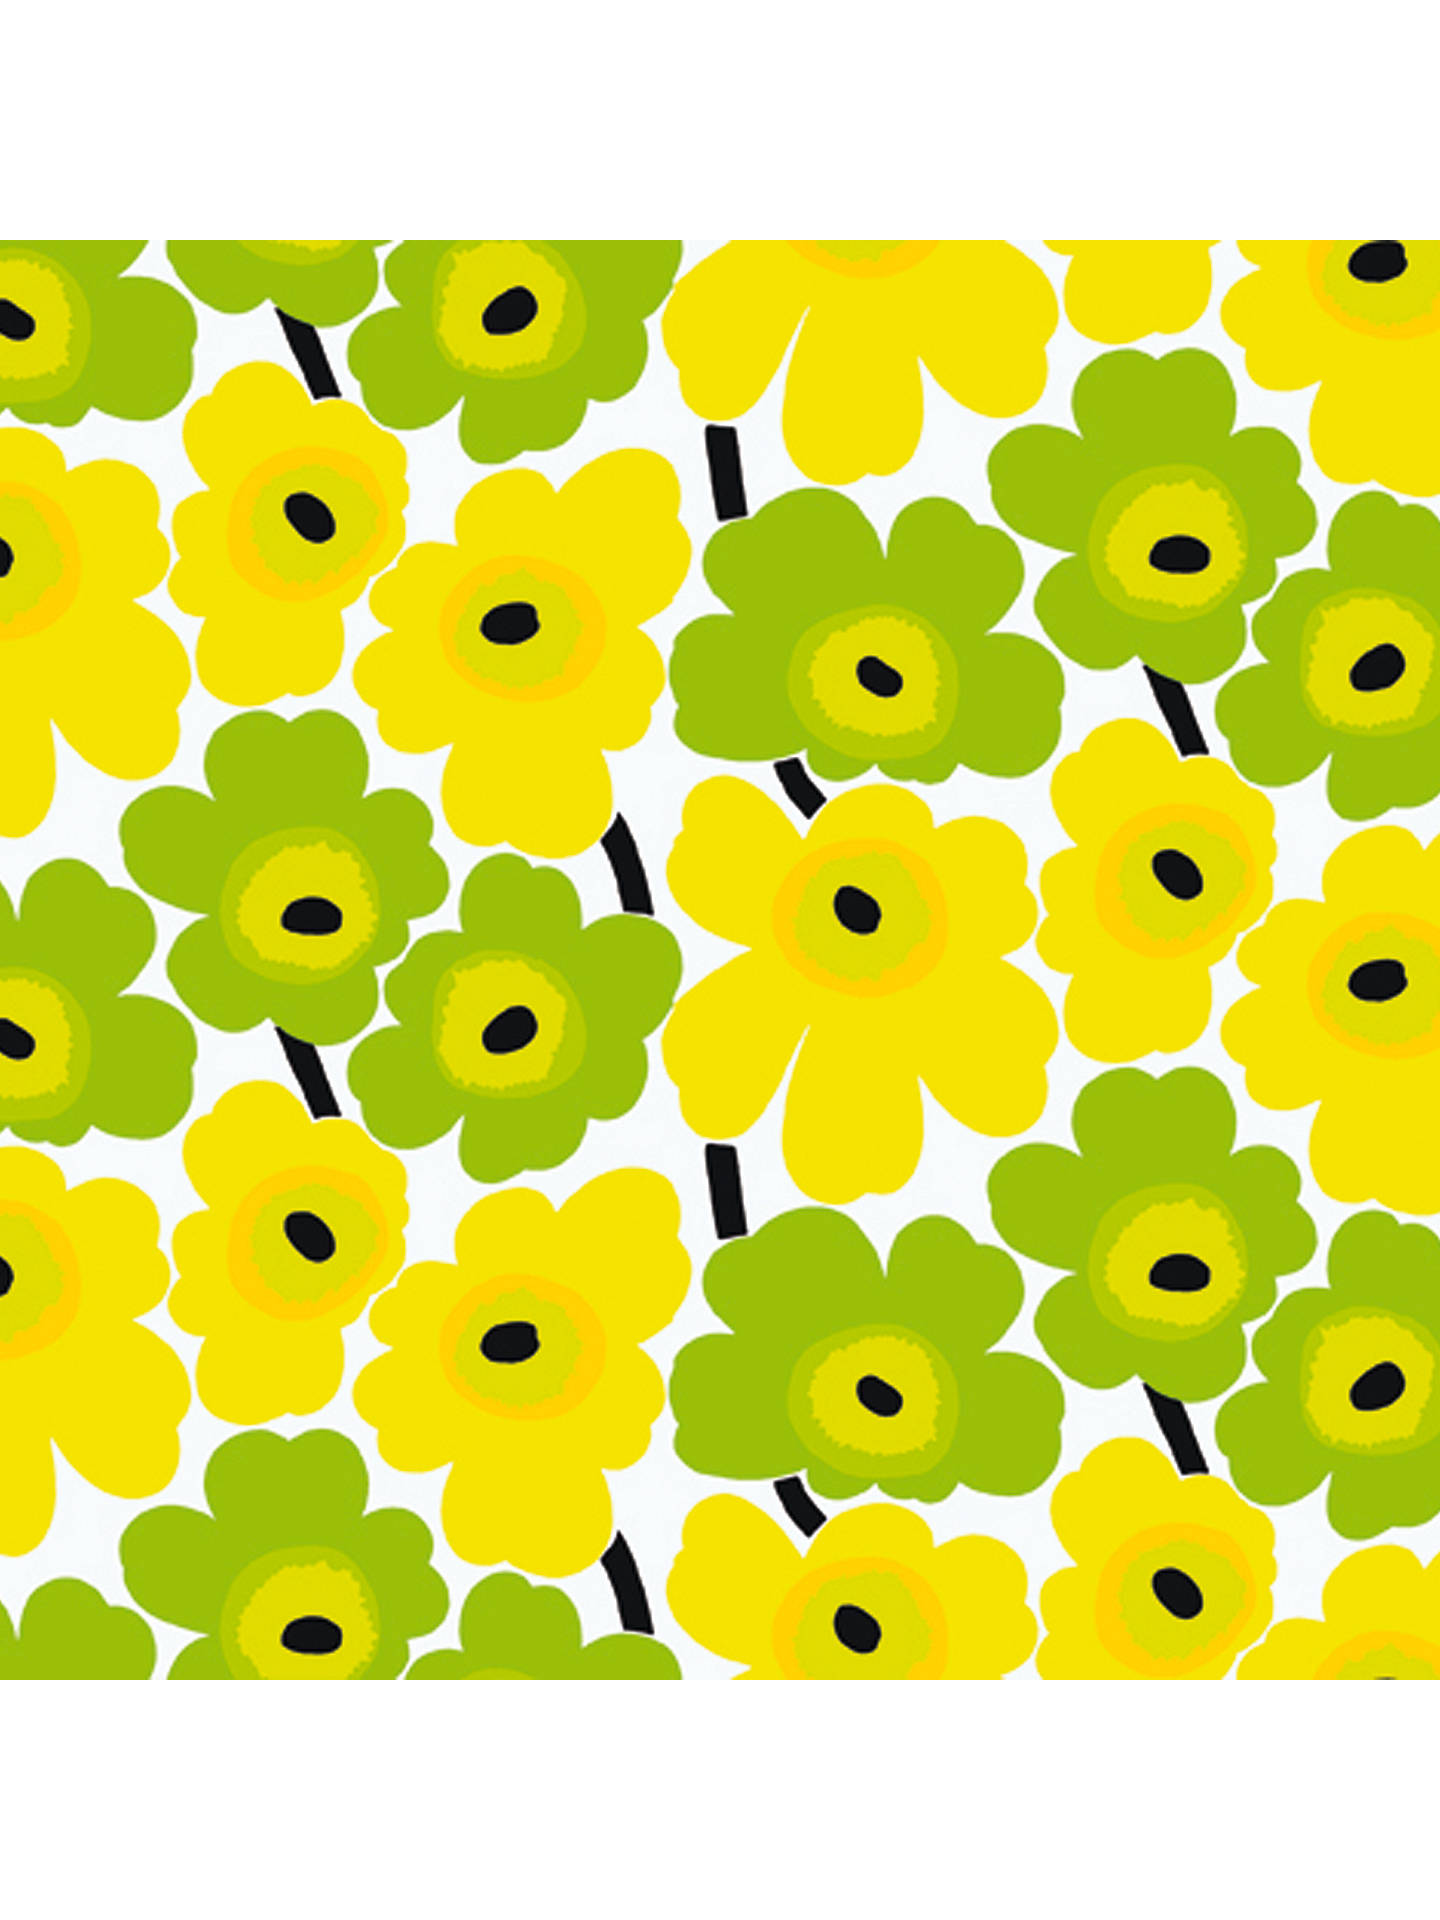 Marimekko Pieni Unikko Lemon Wallpaper Yellow Green 14162 At